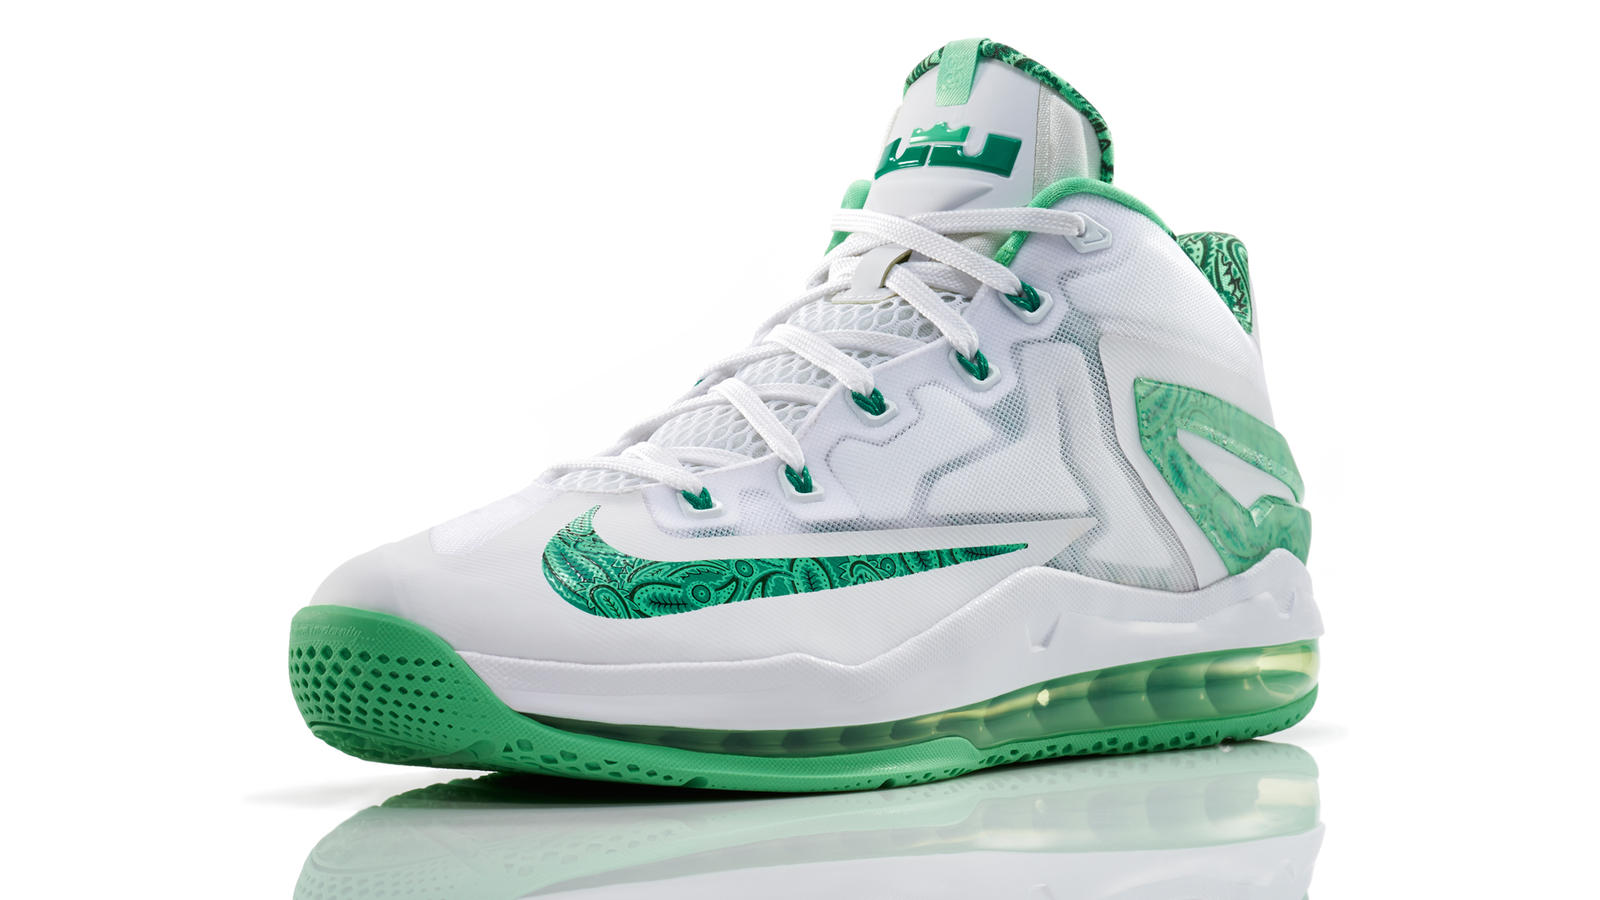 lebron_11_low_easter_100_3qtr_0266_fb